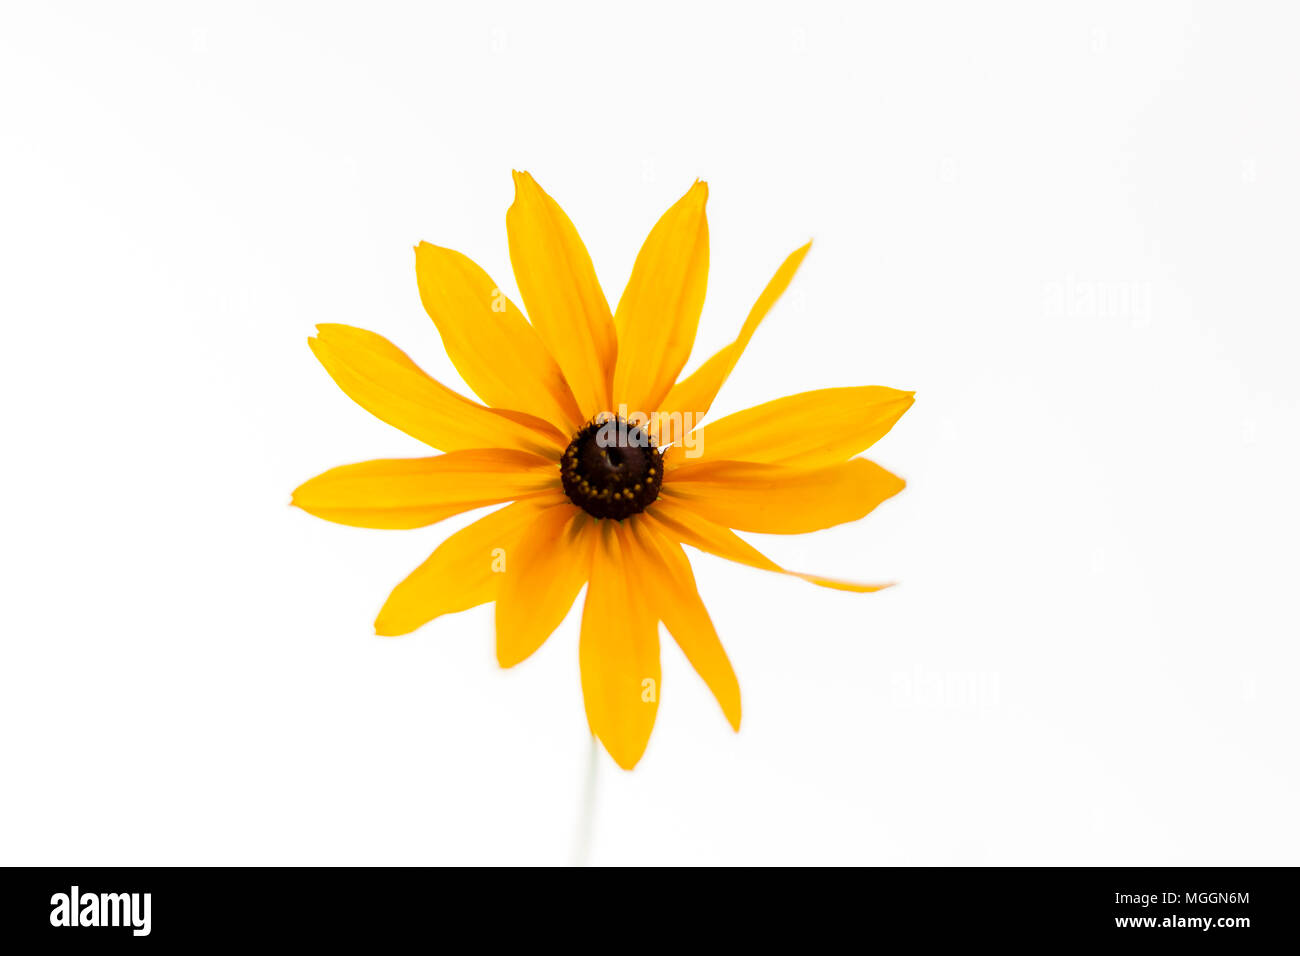 Yellow gentle daisy flower on the white background. Stock Photo